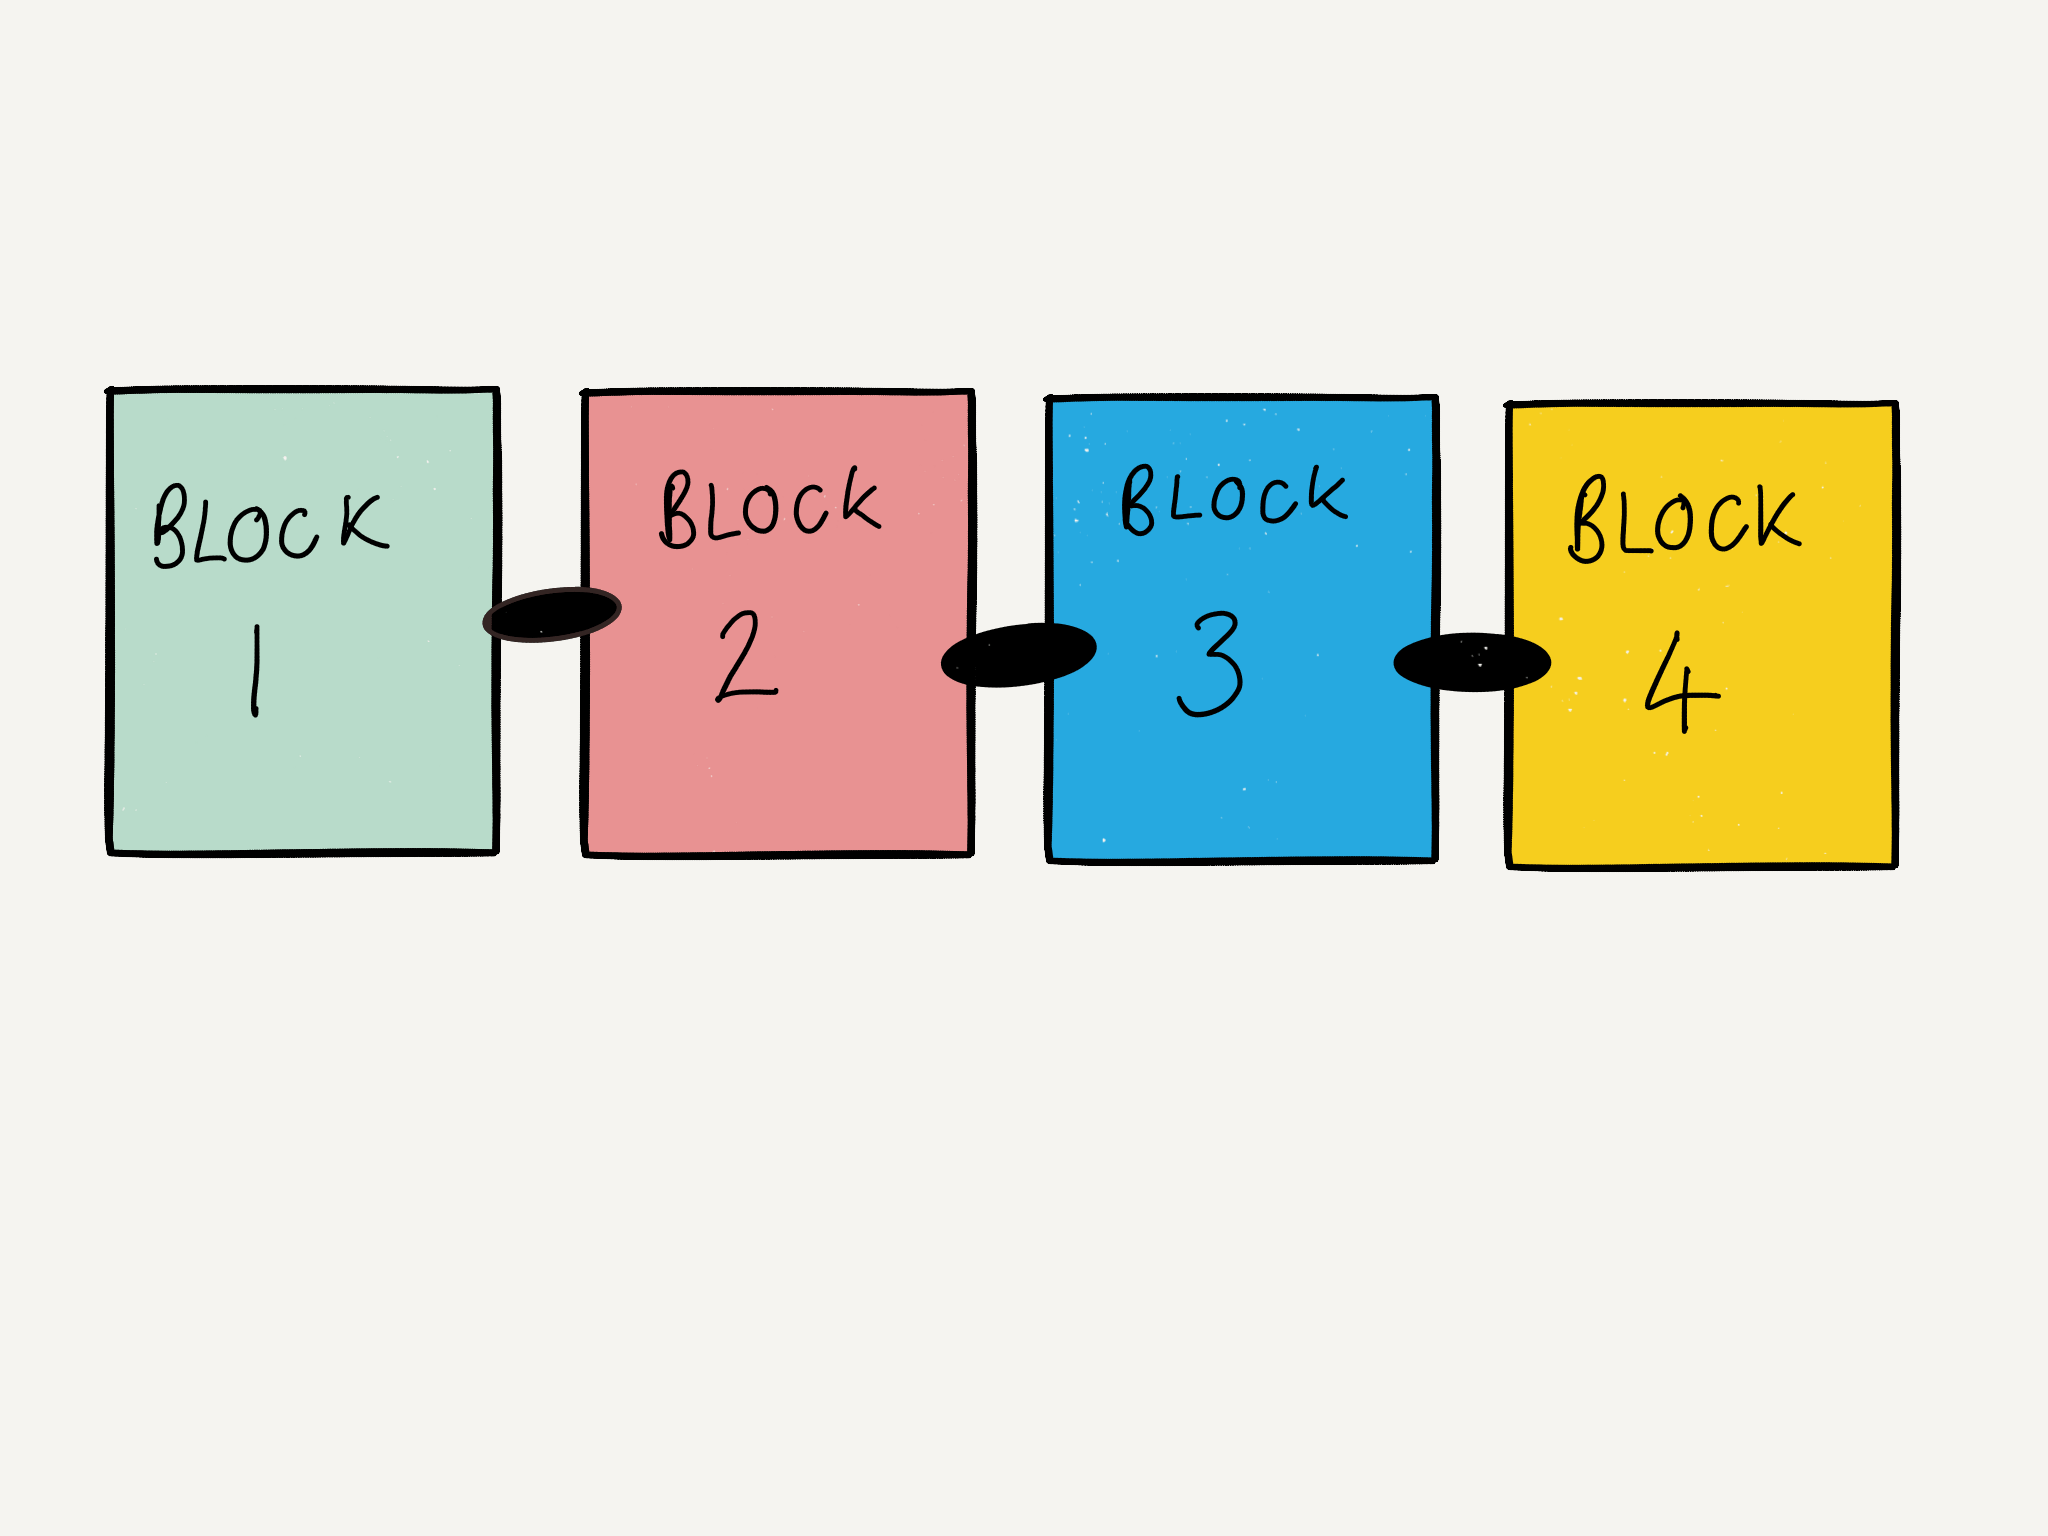 Blockchain: It's Just Chains Of Blocks